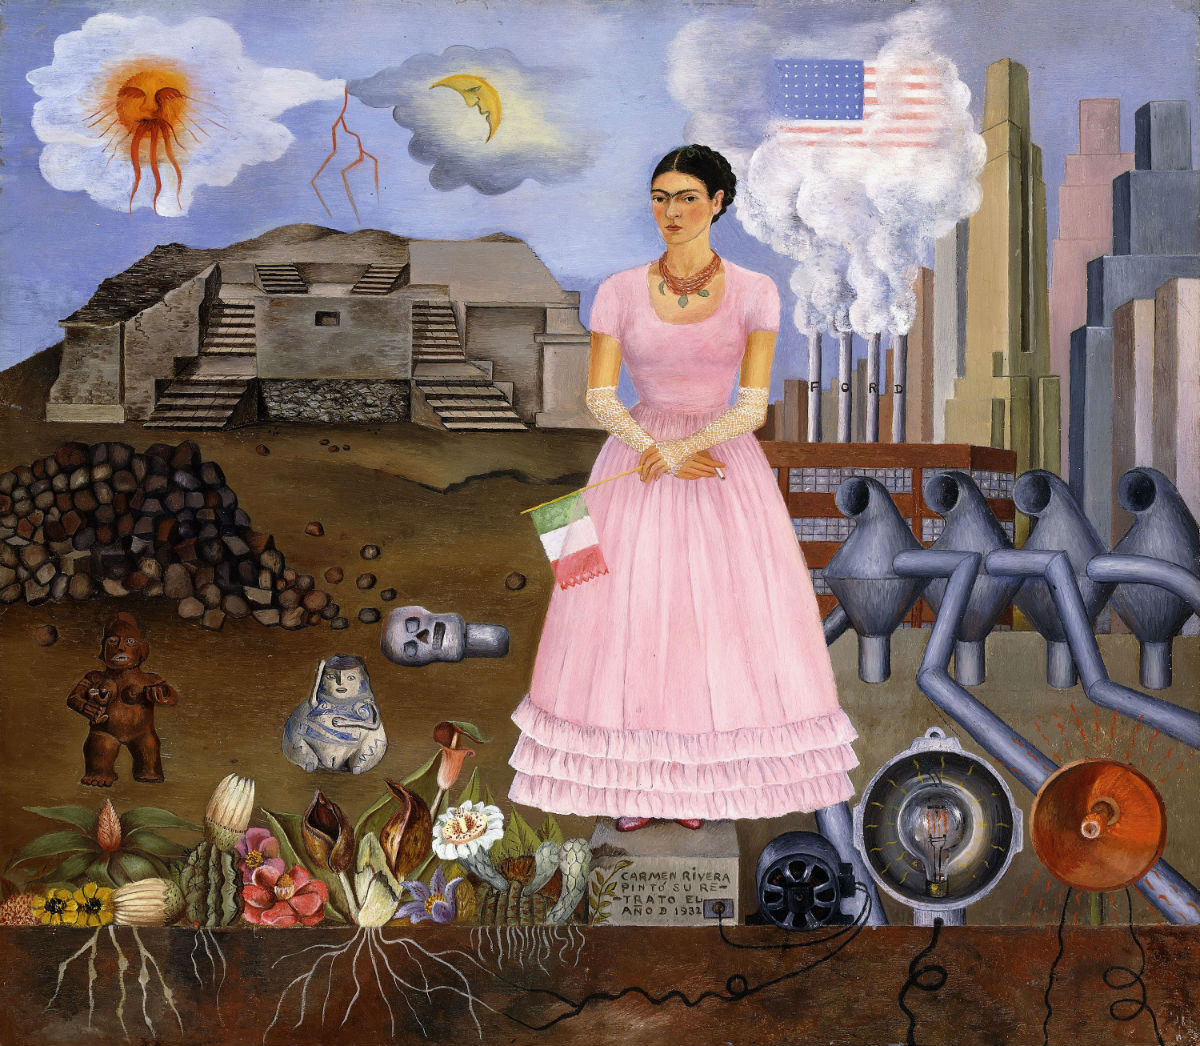 """""""Self Portrait on the Border between Mexico and the United States of America, 1932 (oil on tin) by Frida Kahlo. Private Collection. This work is included in the new exhibit at the Philadelphia Museum of Art, """"Paint the Revolution: Mexican Modernism 1910-1950."""""""